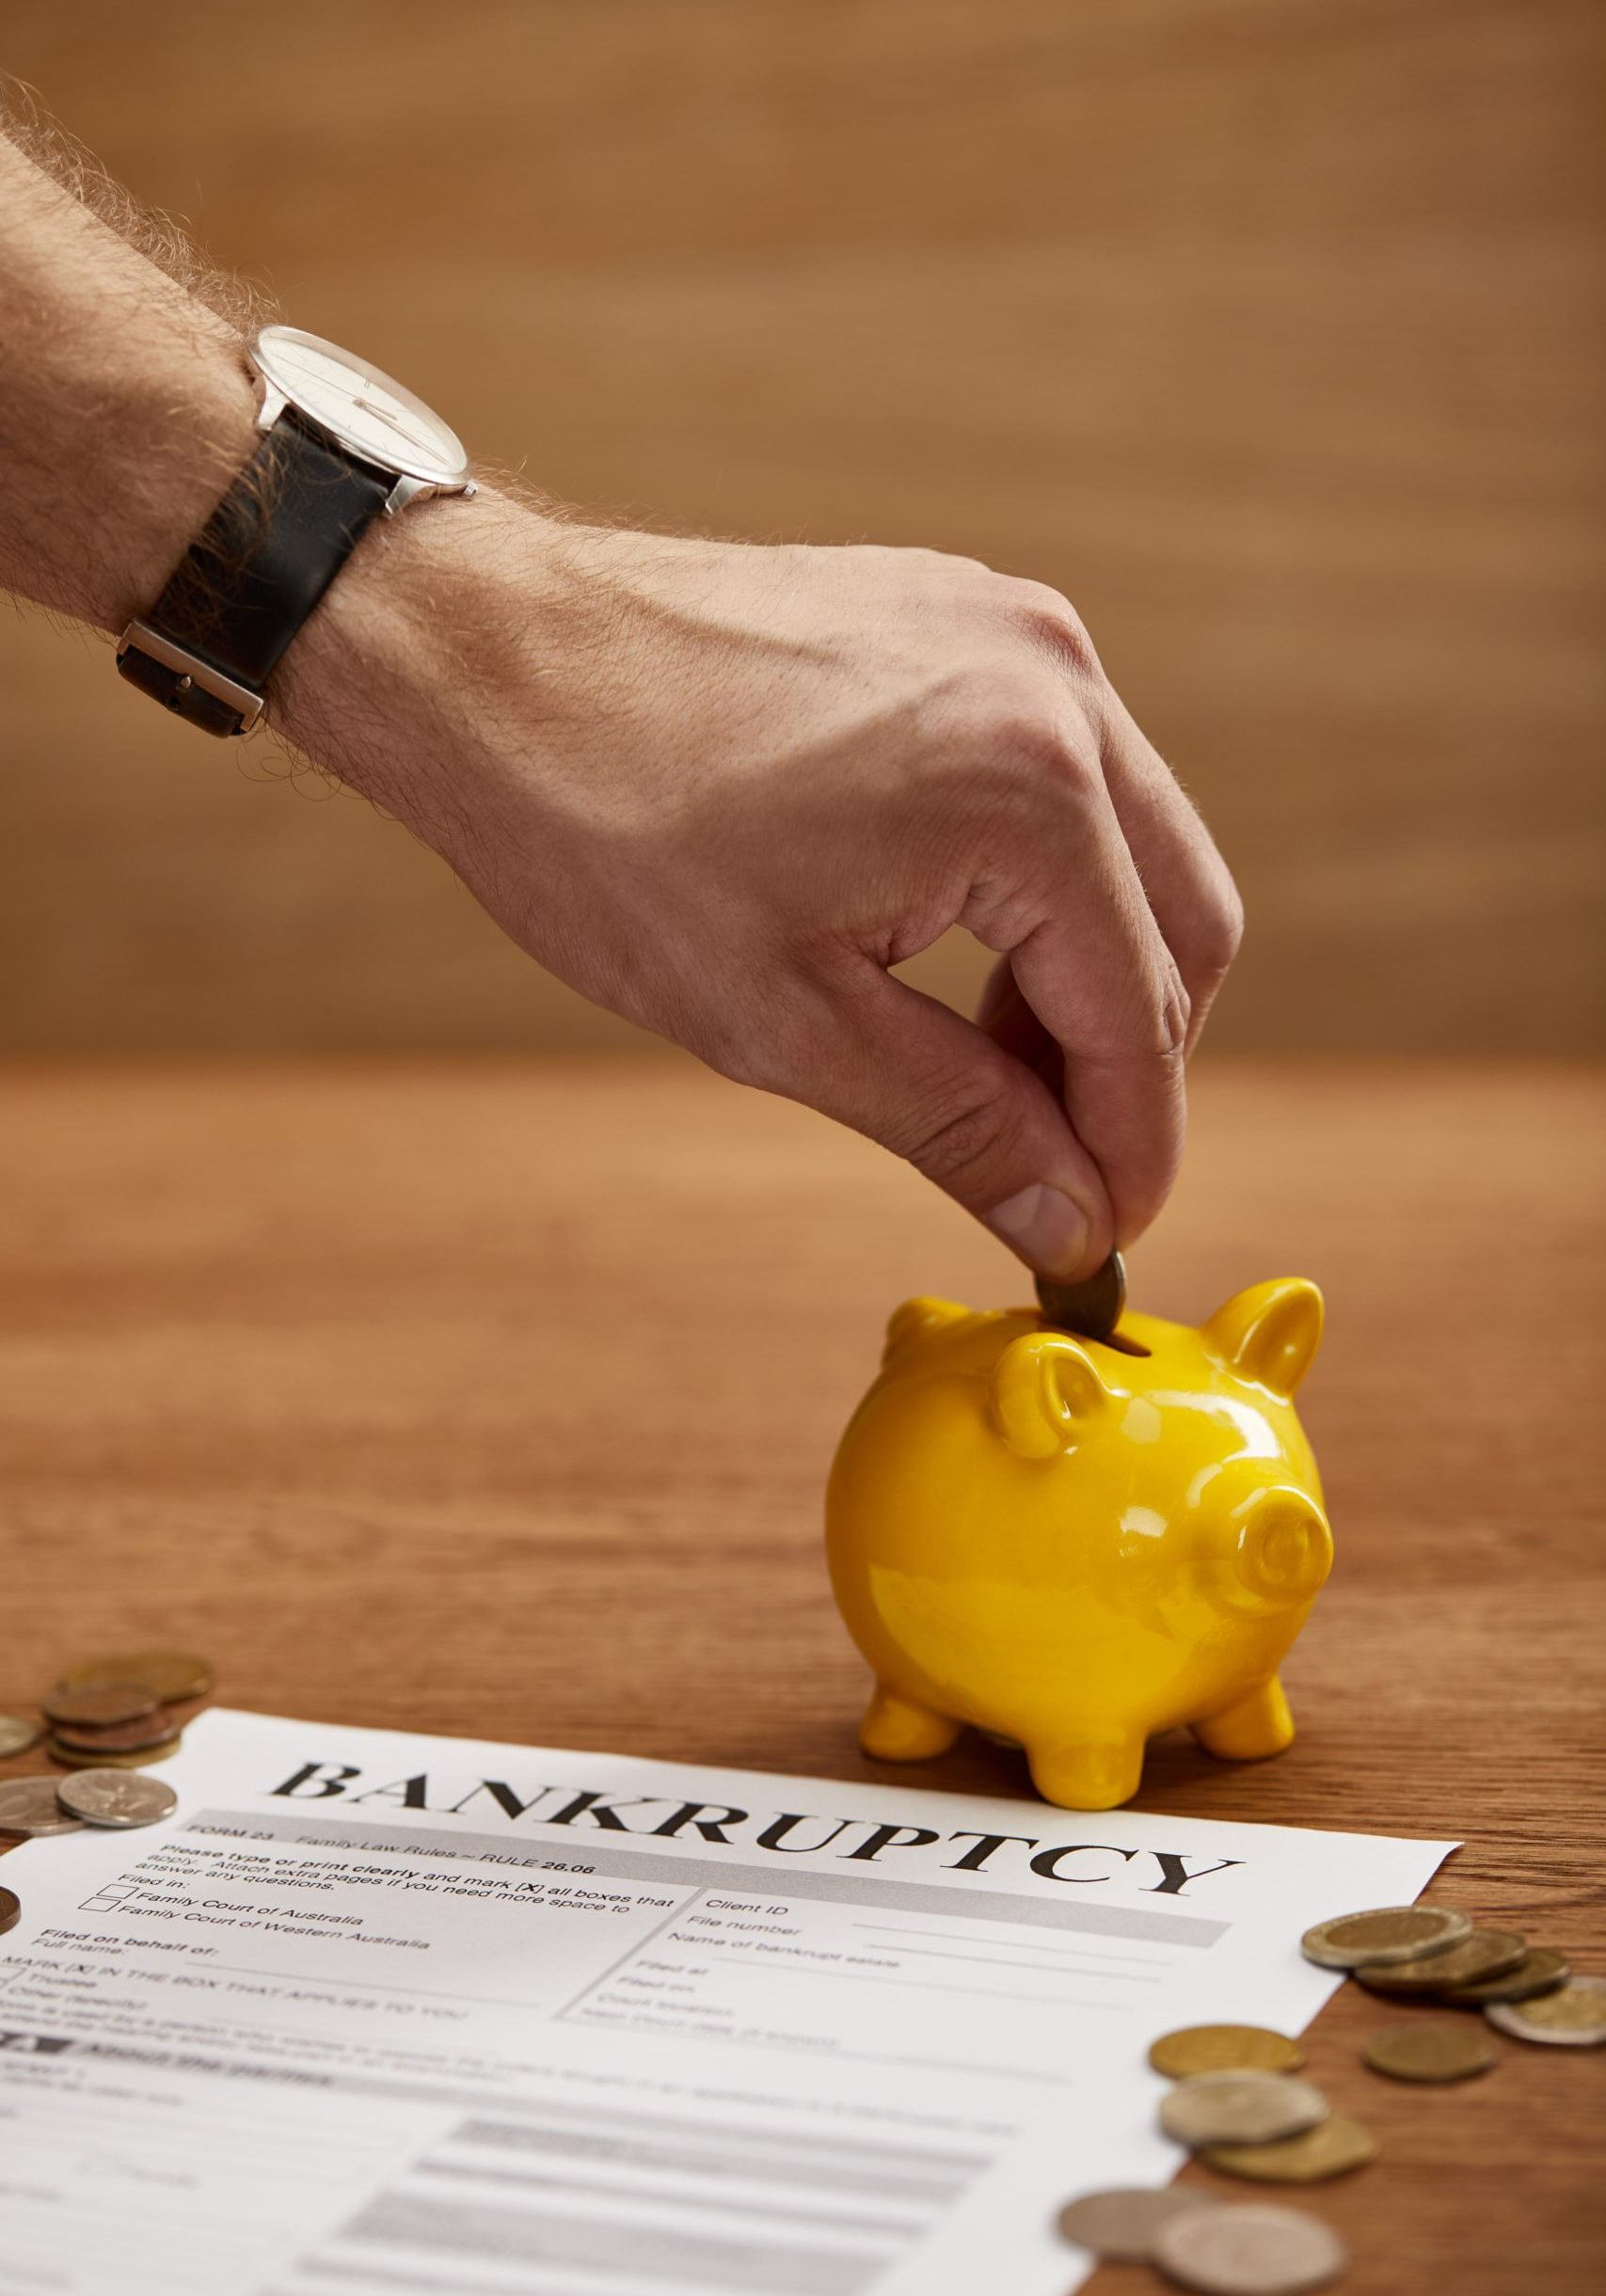 saving money for chapter 11 bankruptcy filing